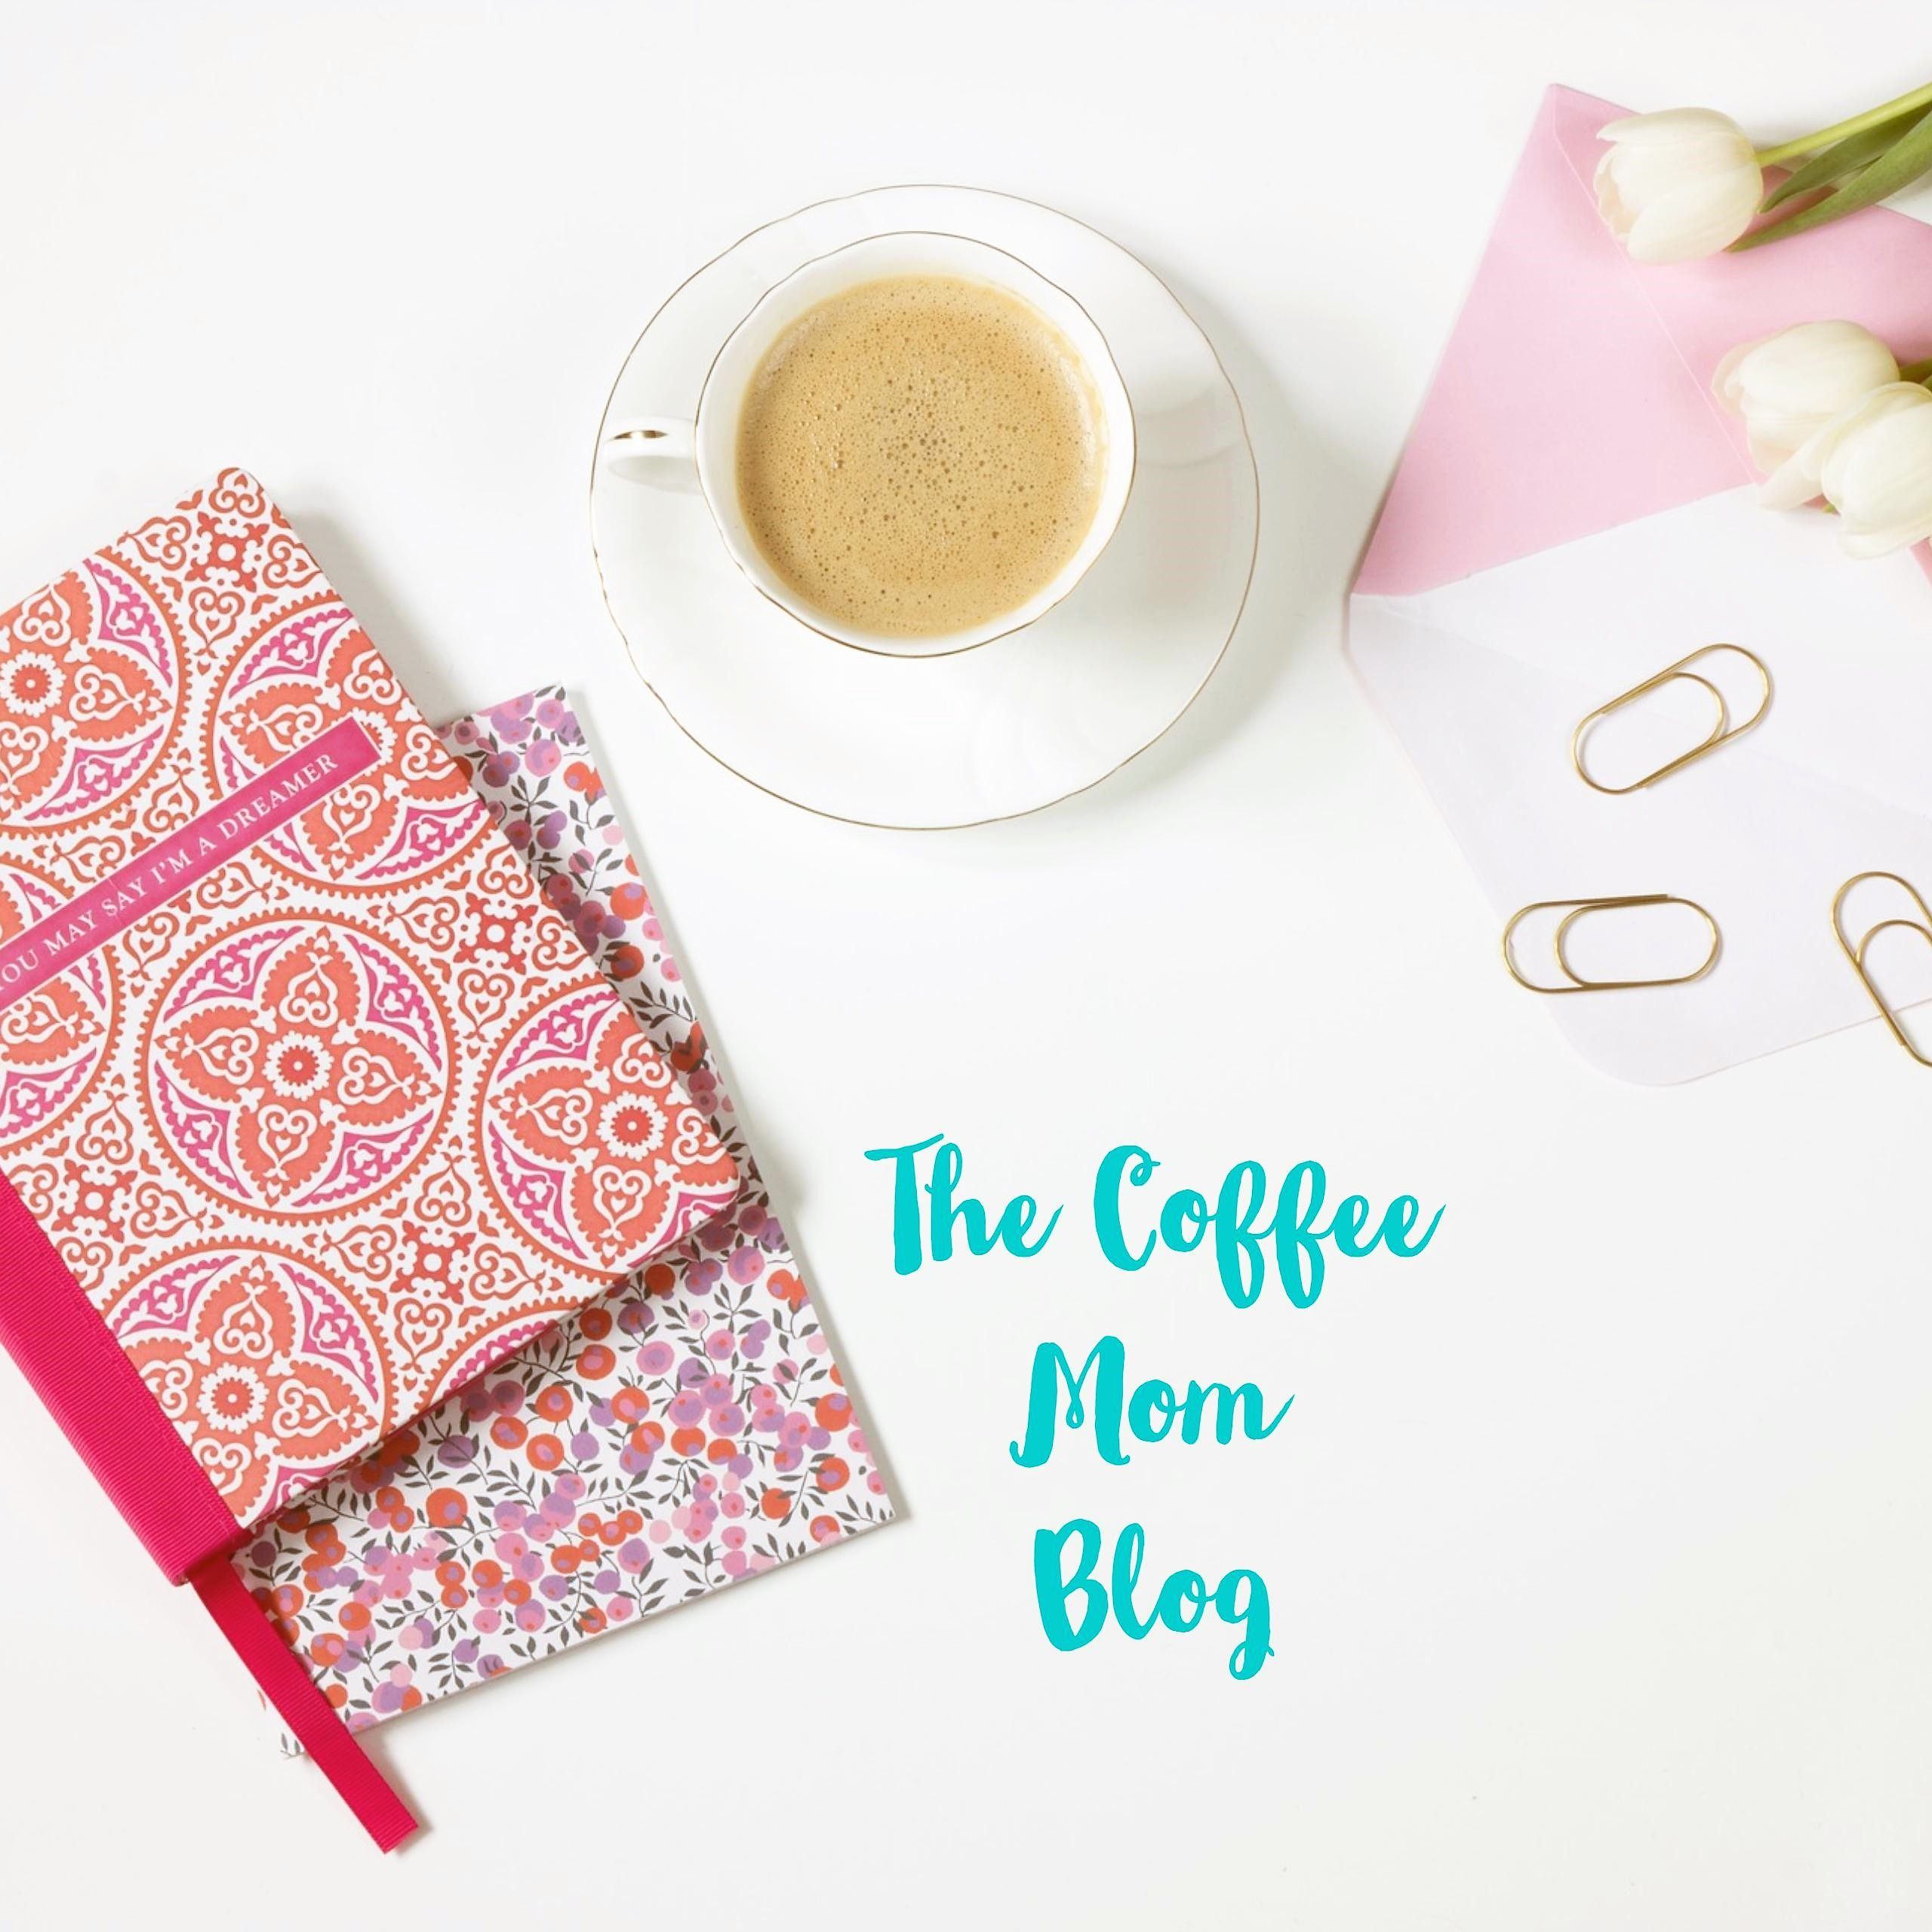 The best of The Coffee Mom Blog. Learn about everything from frugal living, parenting tips, and blogging advice!